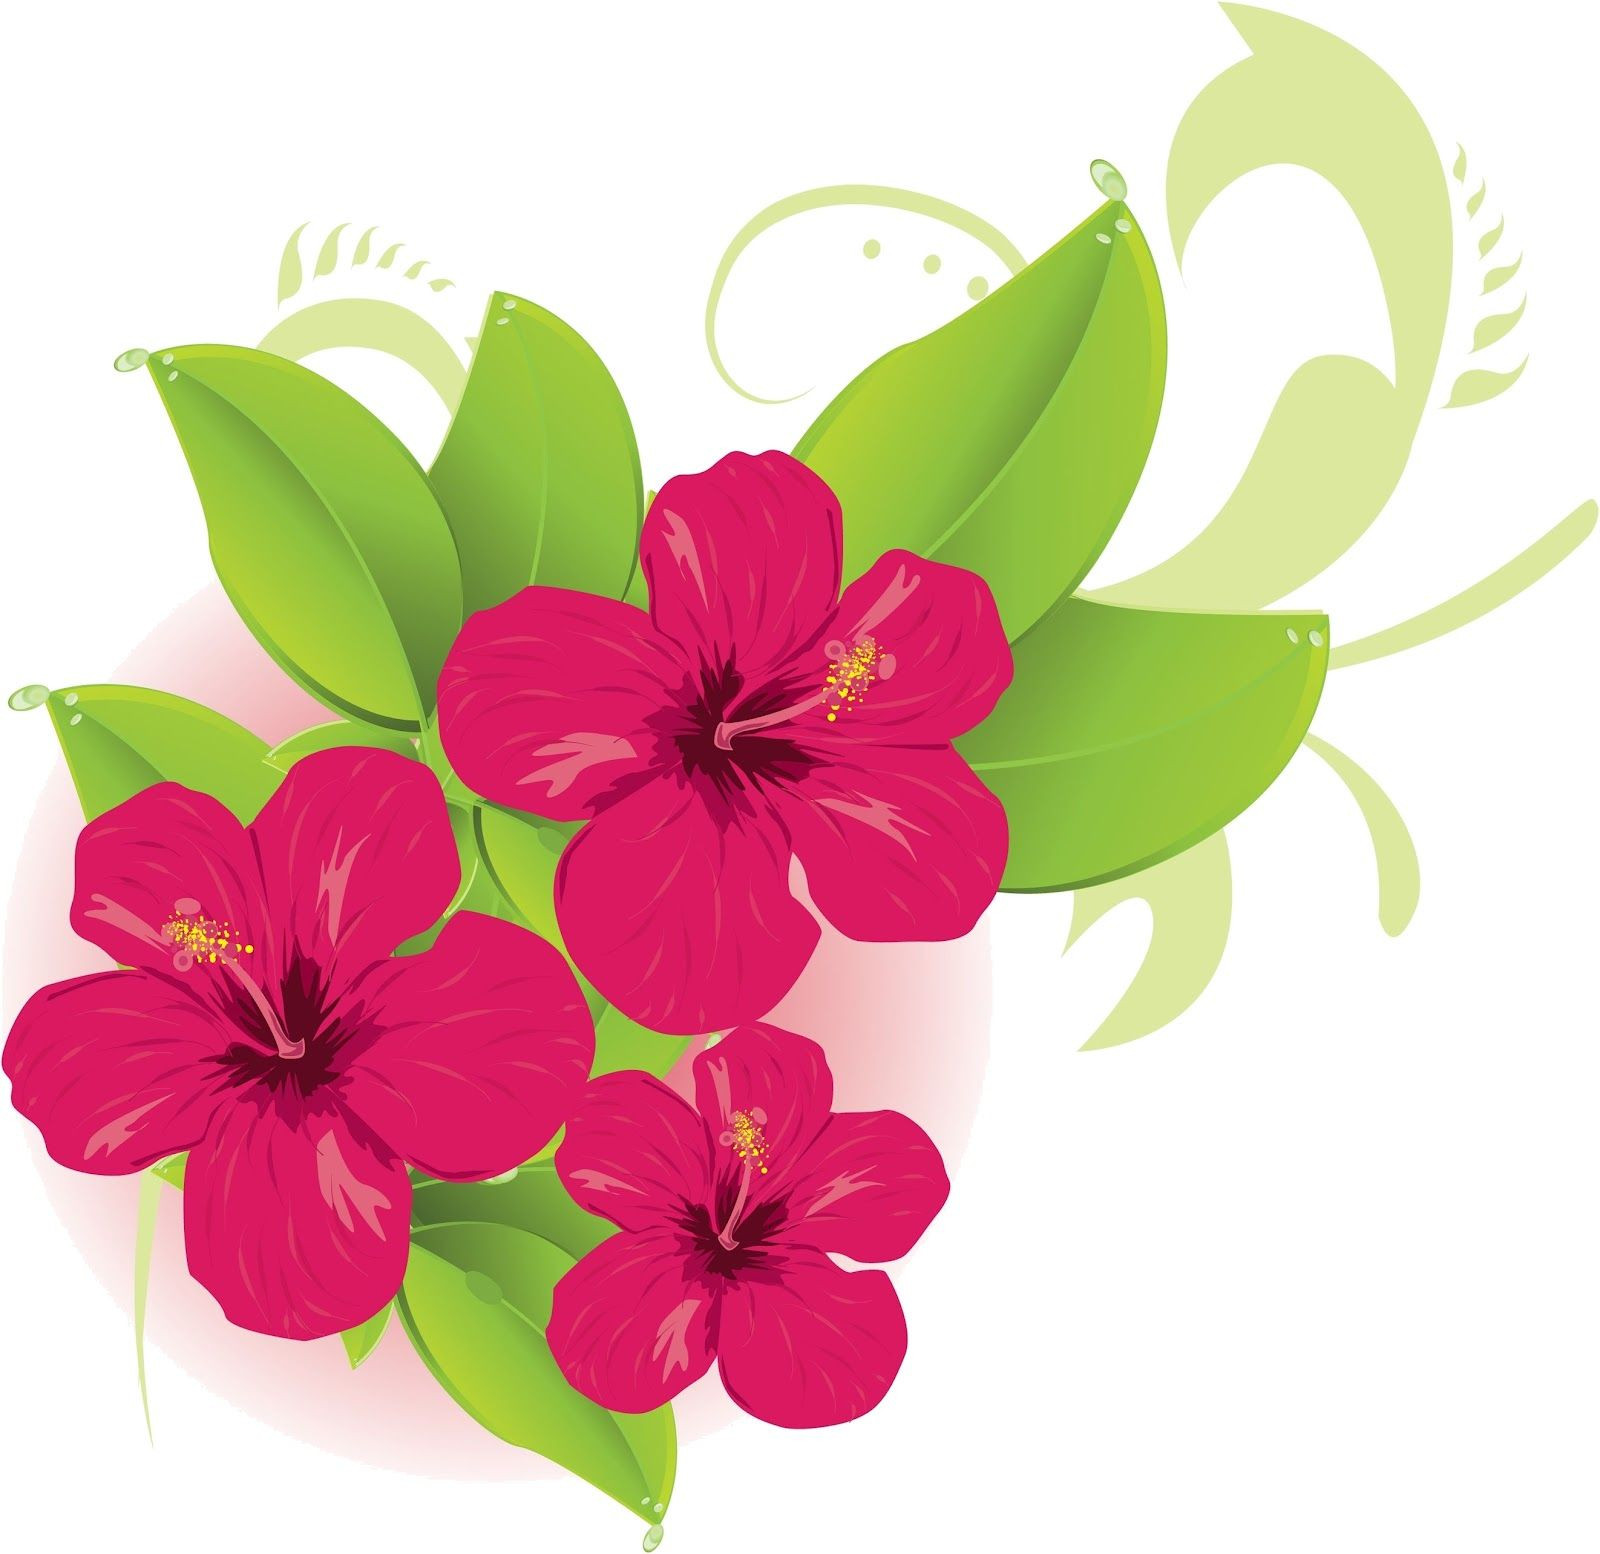 Hibiscus flower clipart at getdrawings free for personal use 1600x1554 hawaiian flower clip art hibiscus flowers in six colors free izmirmasajfo